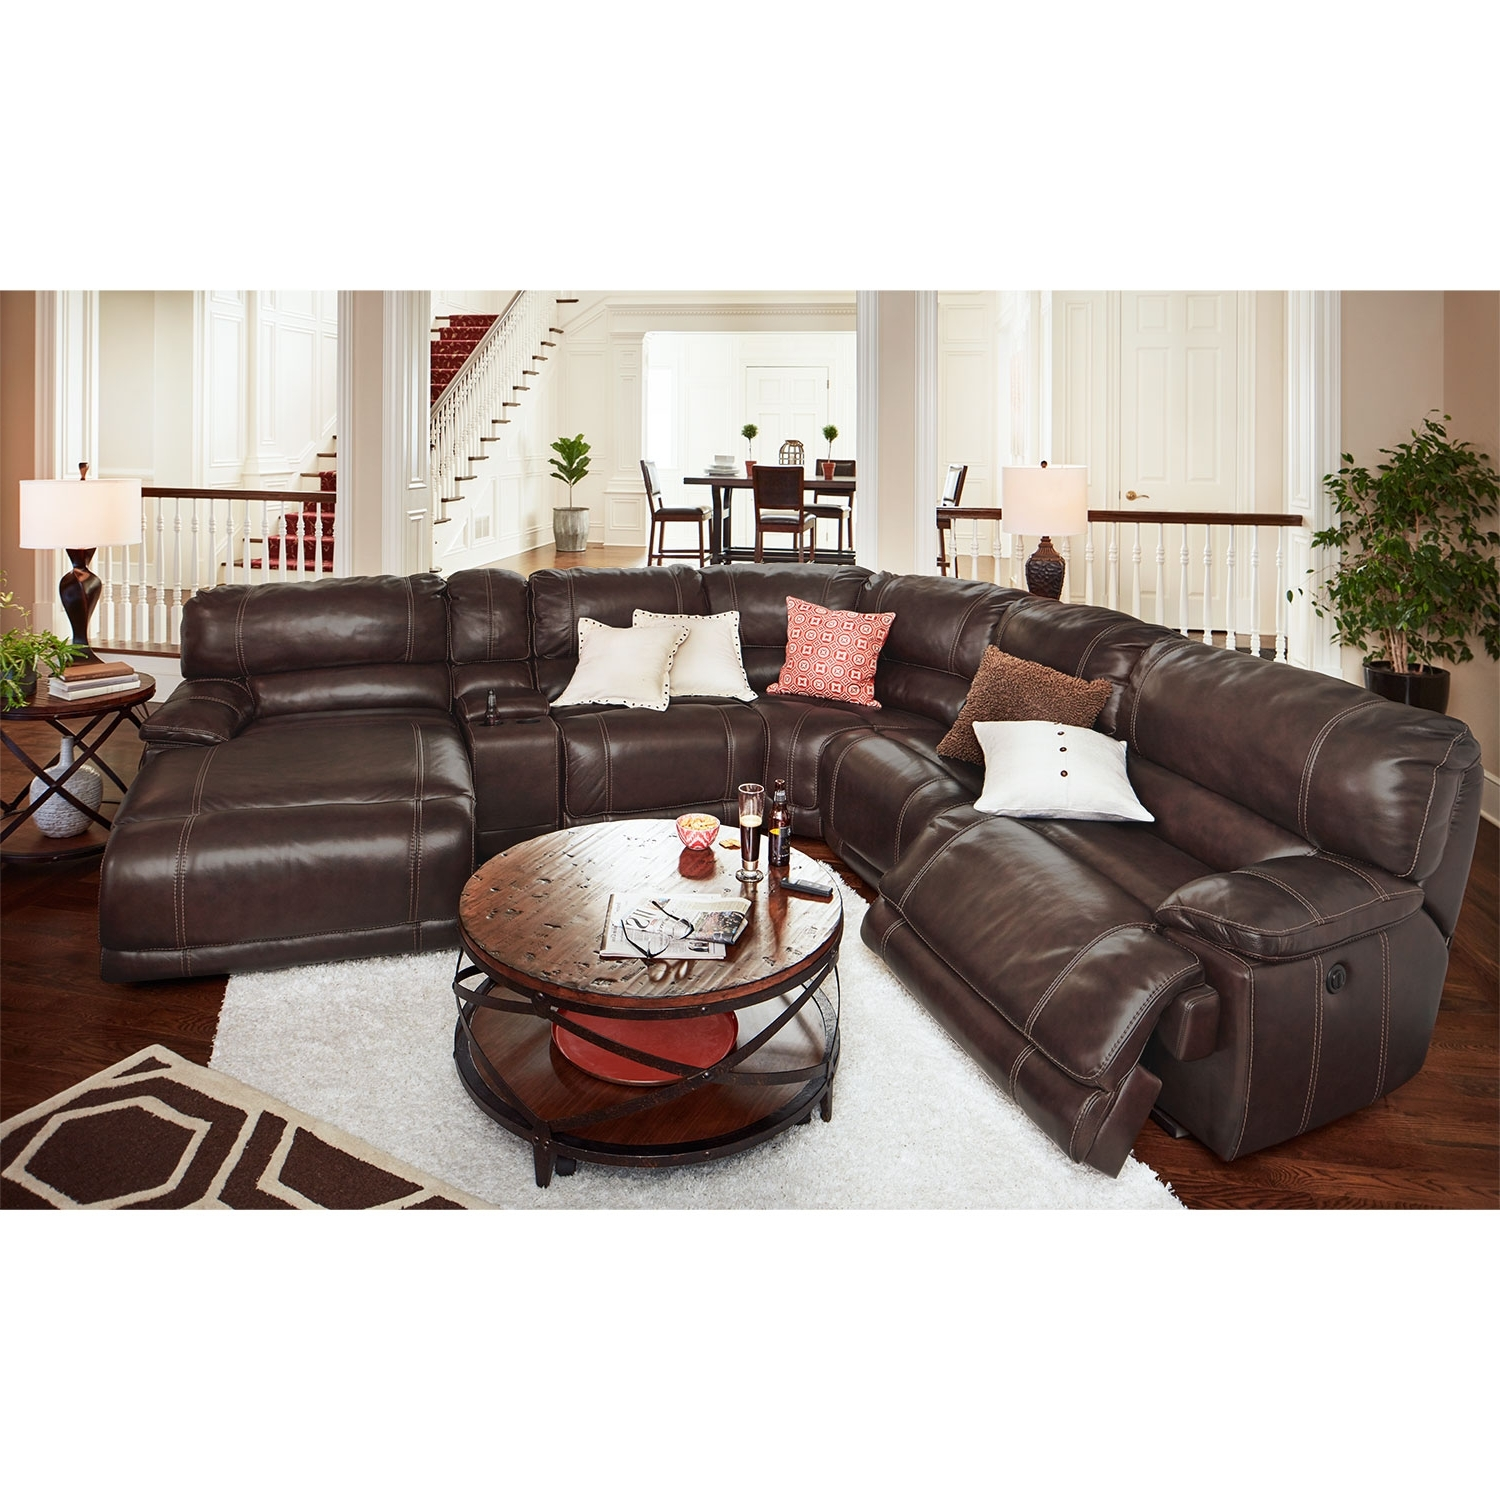 6 Piece Leather Sectional Sofas With Regard To Current Big Softie 6 Pc (View 9 of 20)